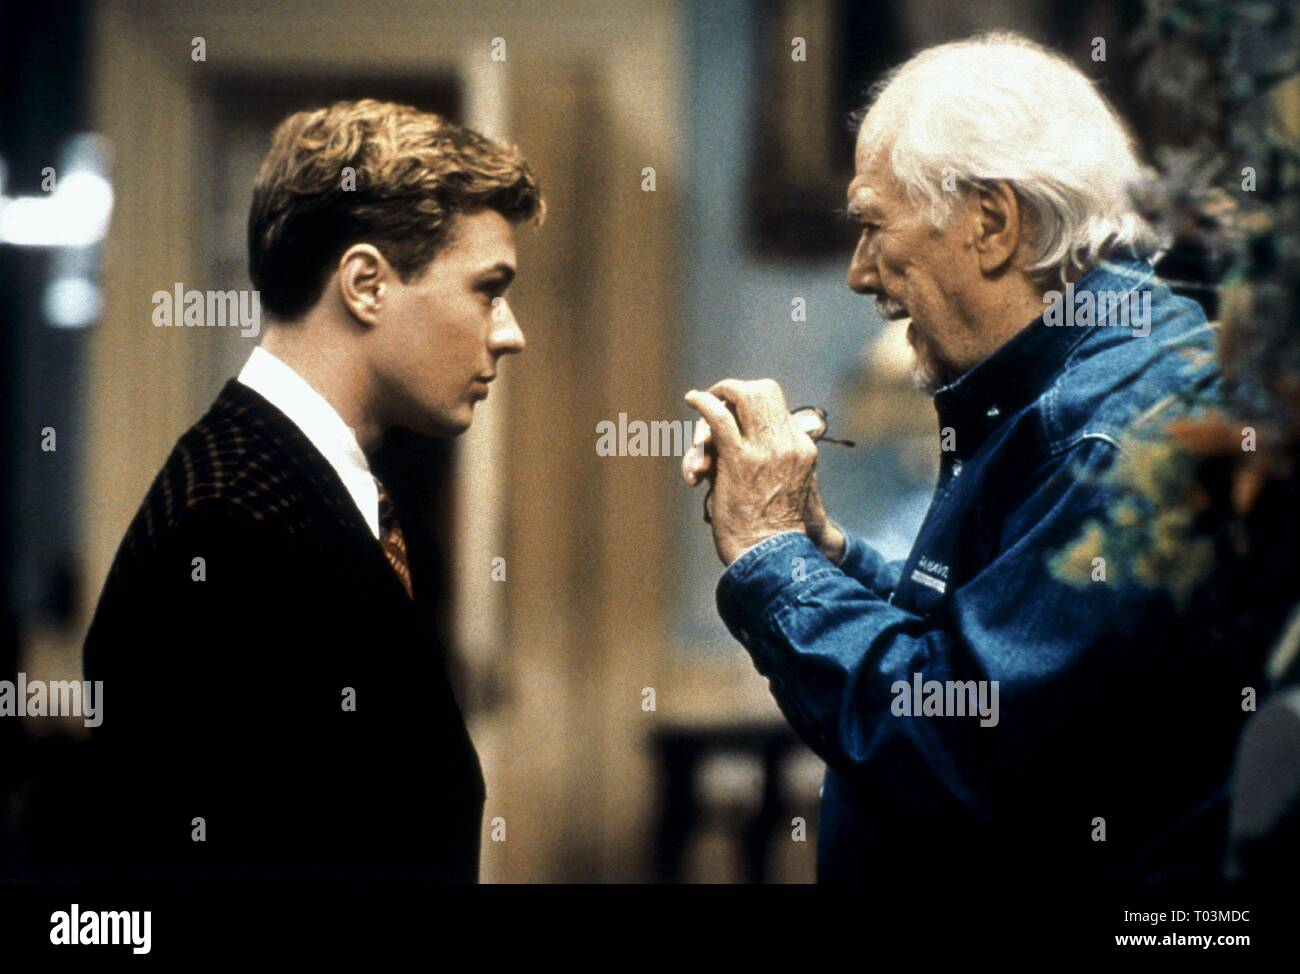 Ryan Phillippe Robert Altman Gosford Park 2001 Stock Photo Alamy